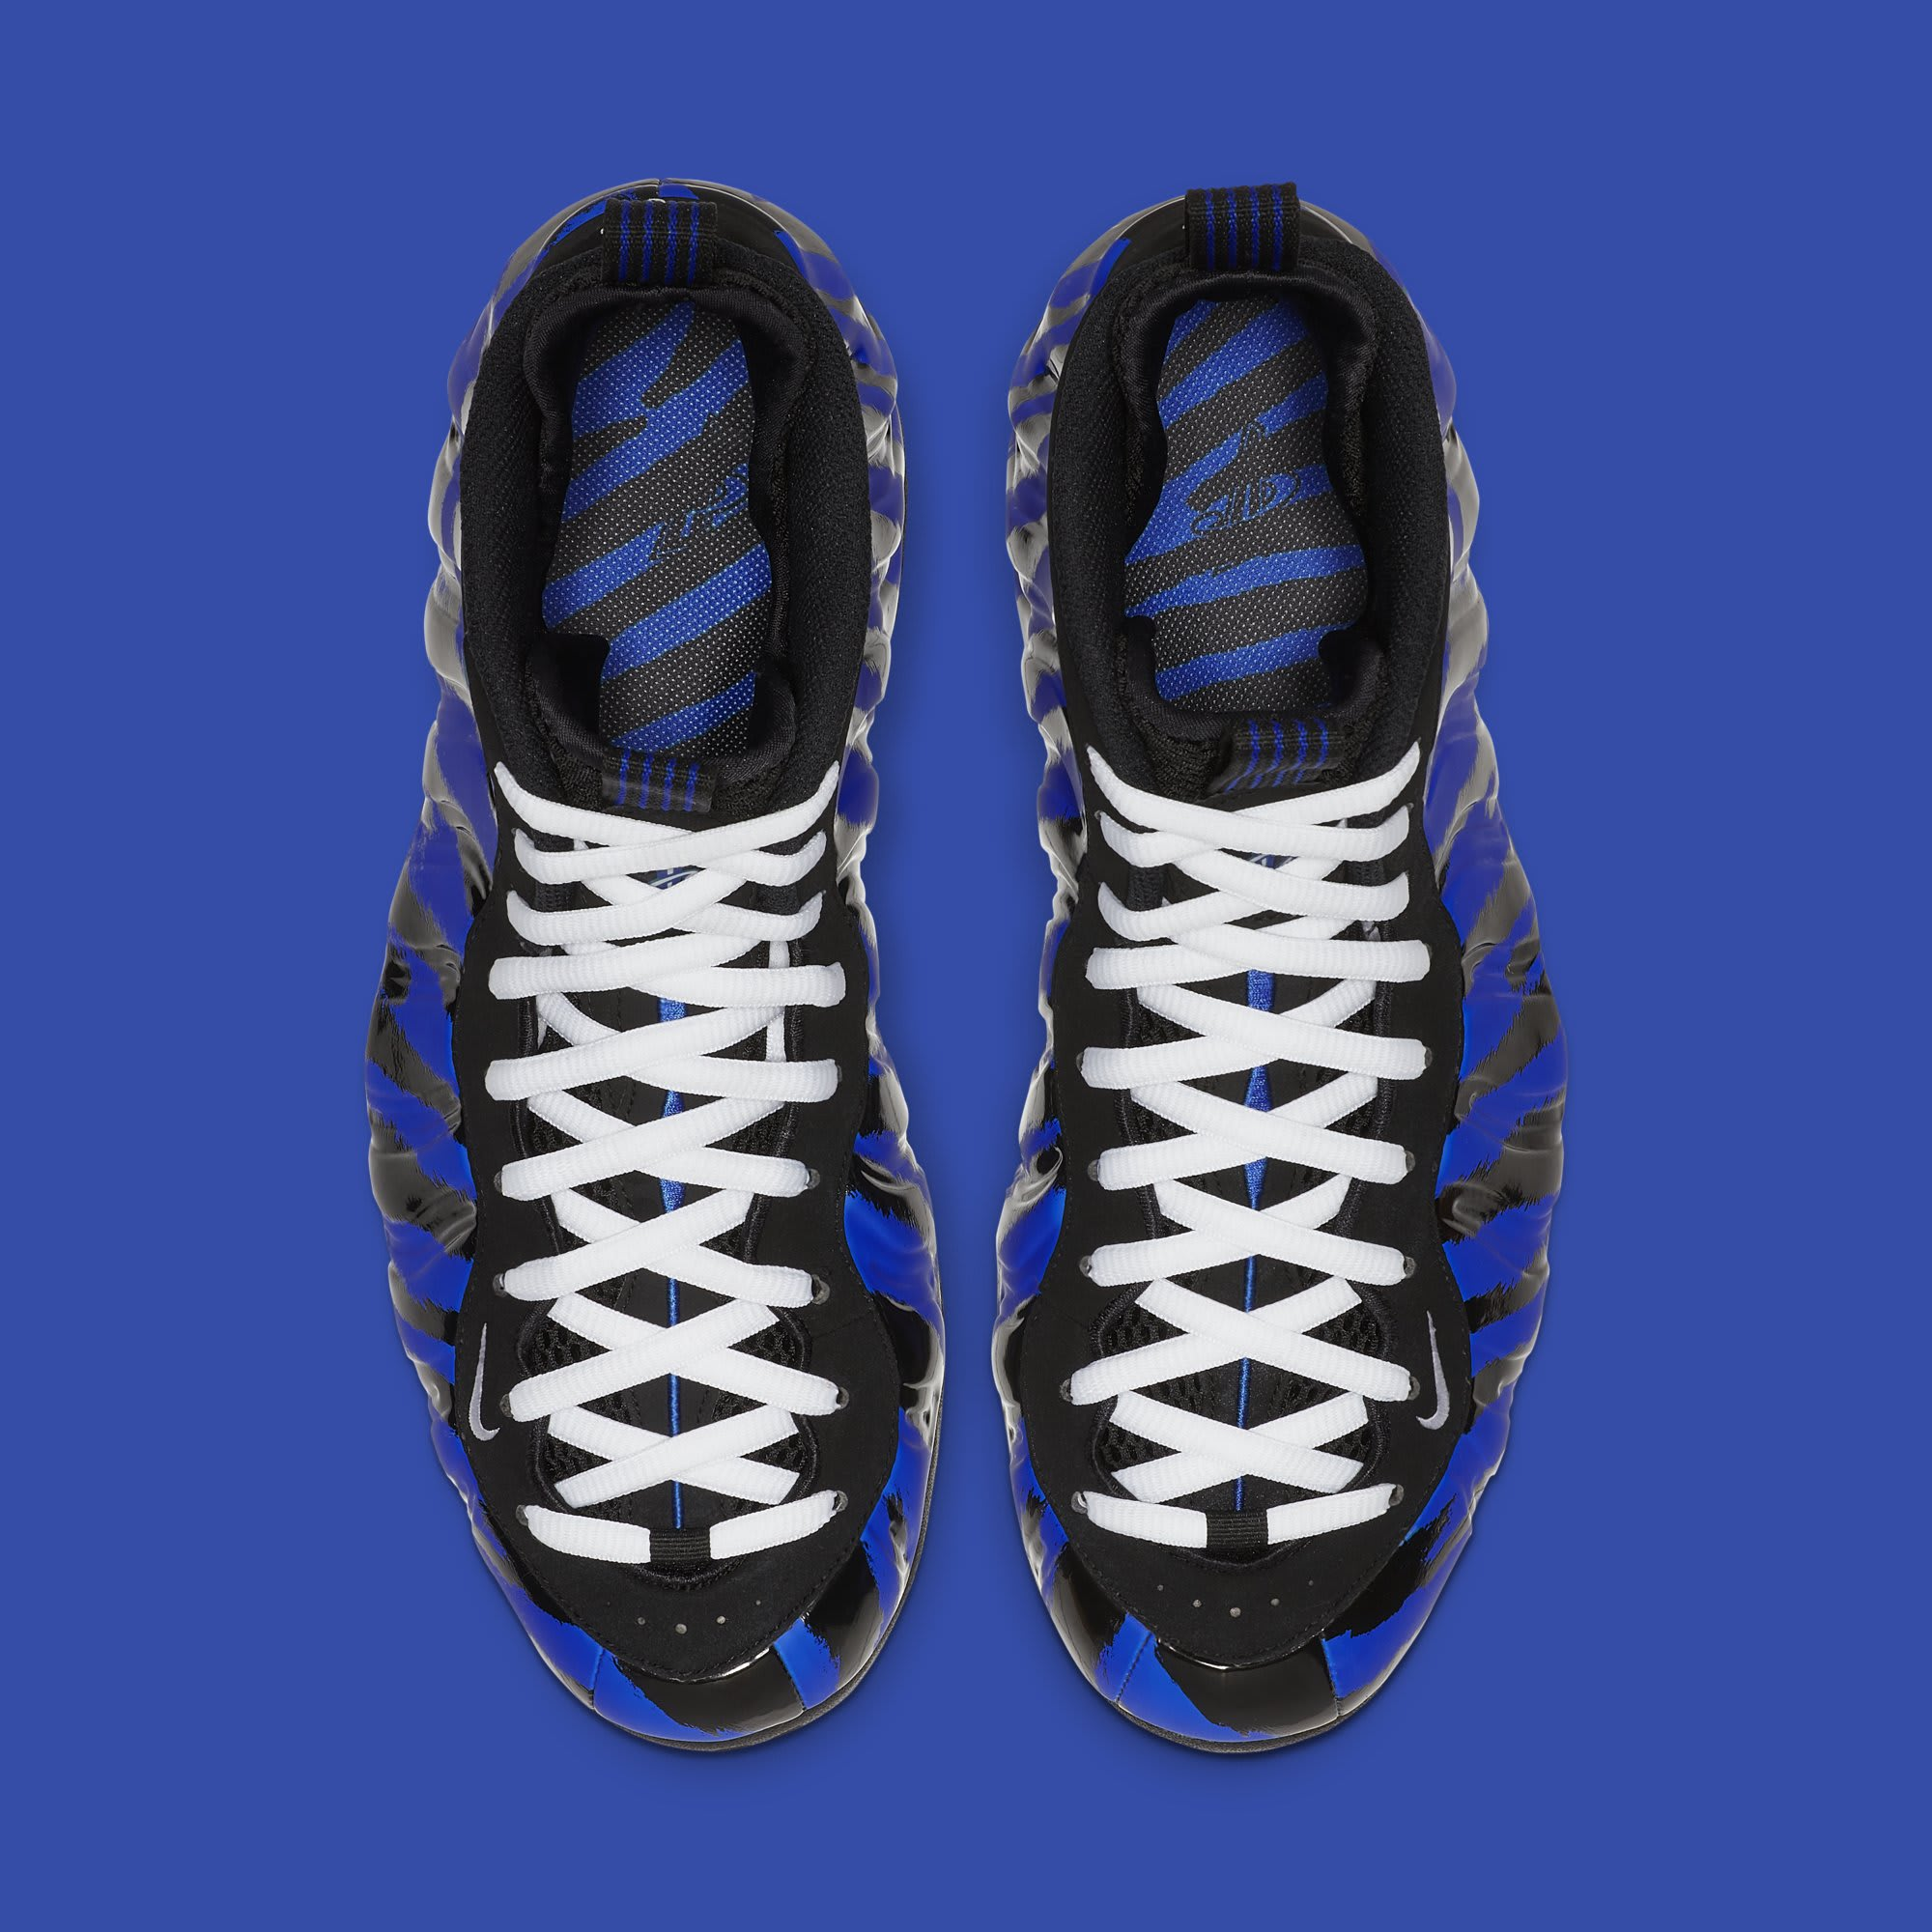 571b8d86a5e Image via Nike Nike Air Foamposite One  Tiger Stripes  BV8161-400 (Top)